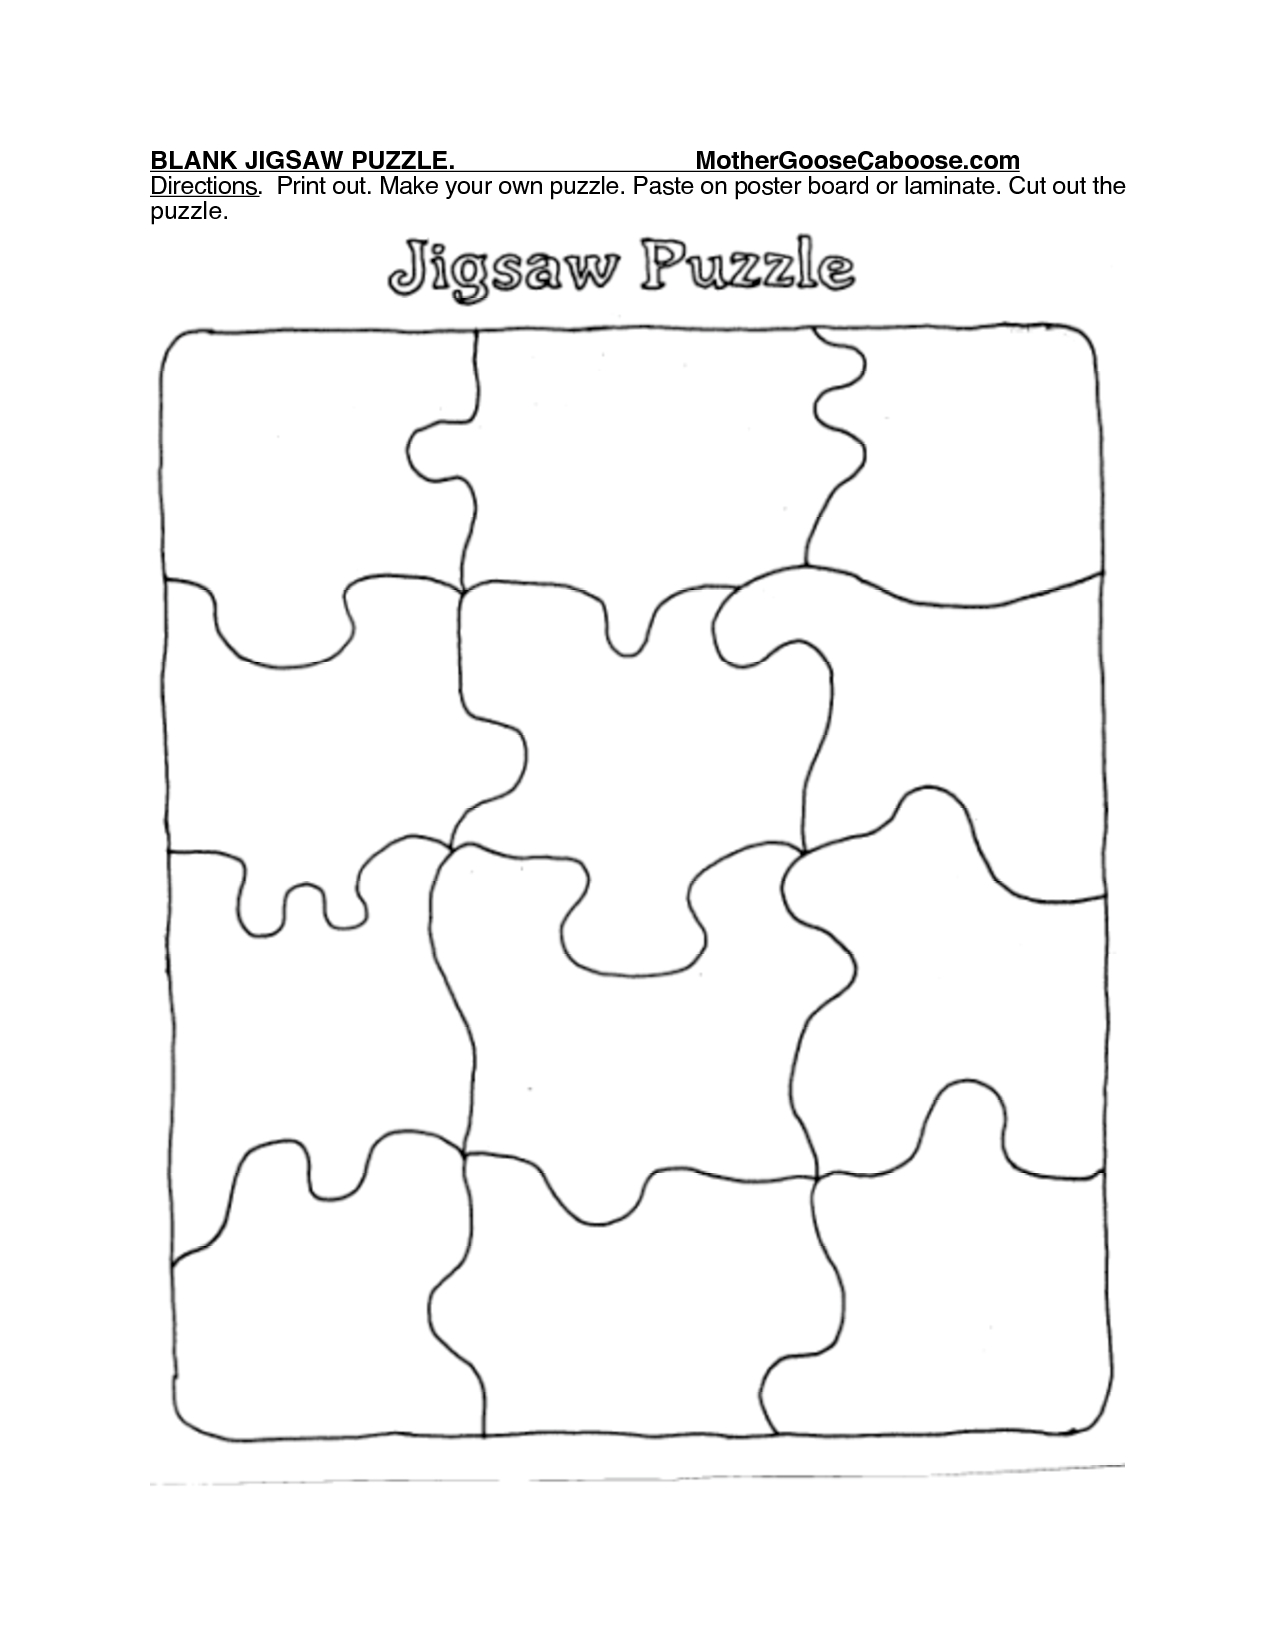 Printable Puzzle Piece Template | Search Results | New Calendar - Printable Art Puzzles